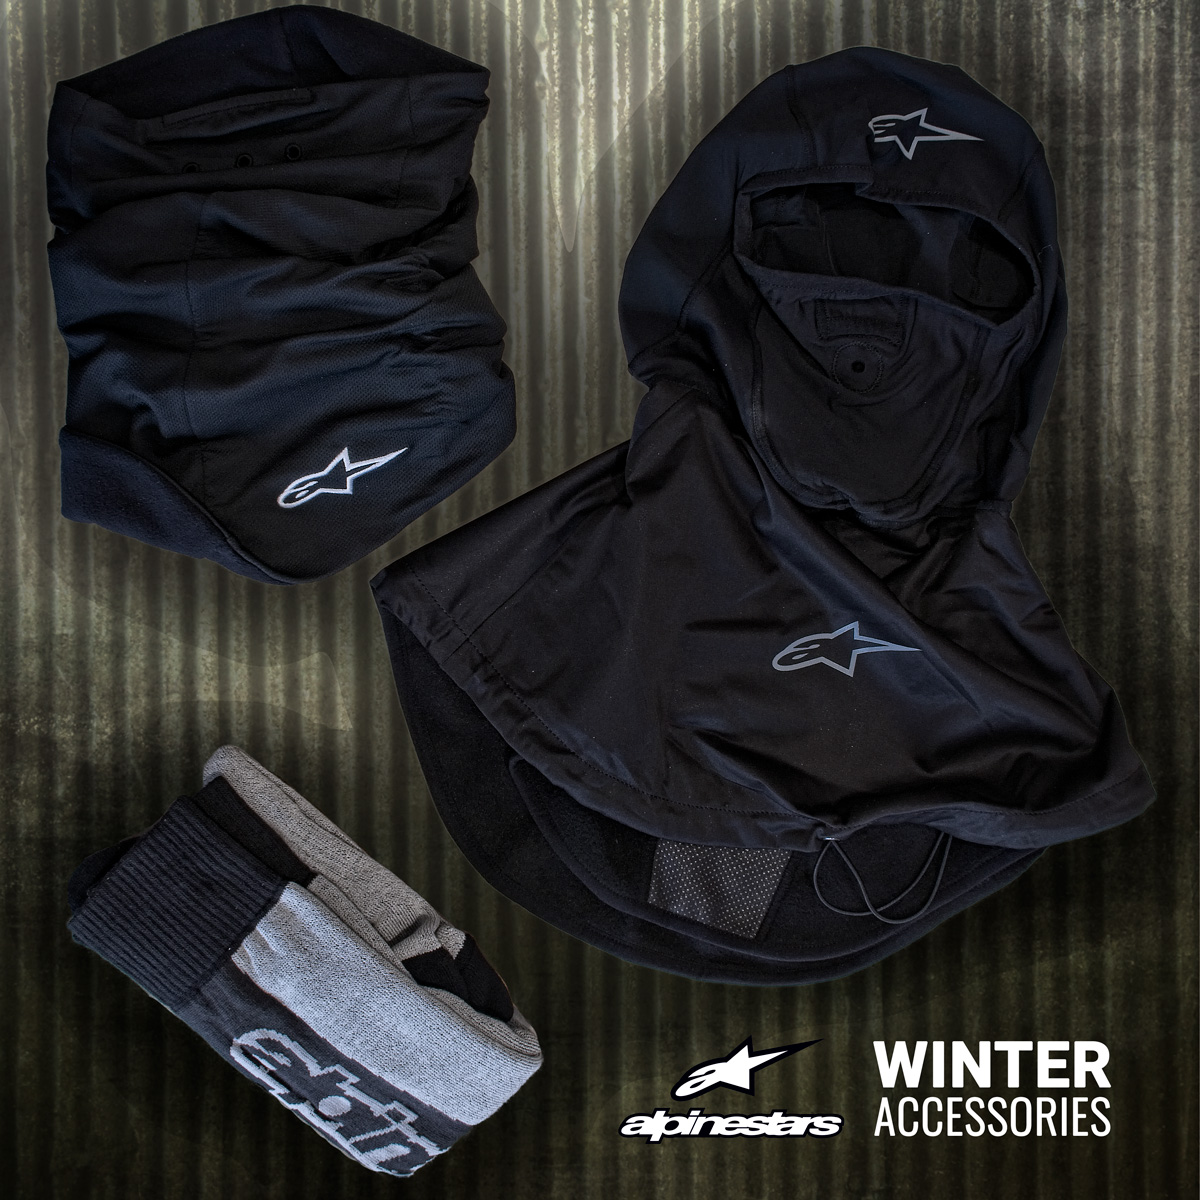 Winter Motorcycle Clothing Accessories Alpinestars